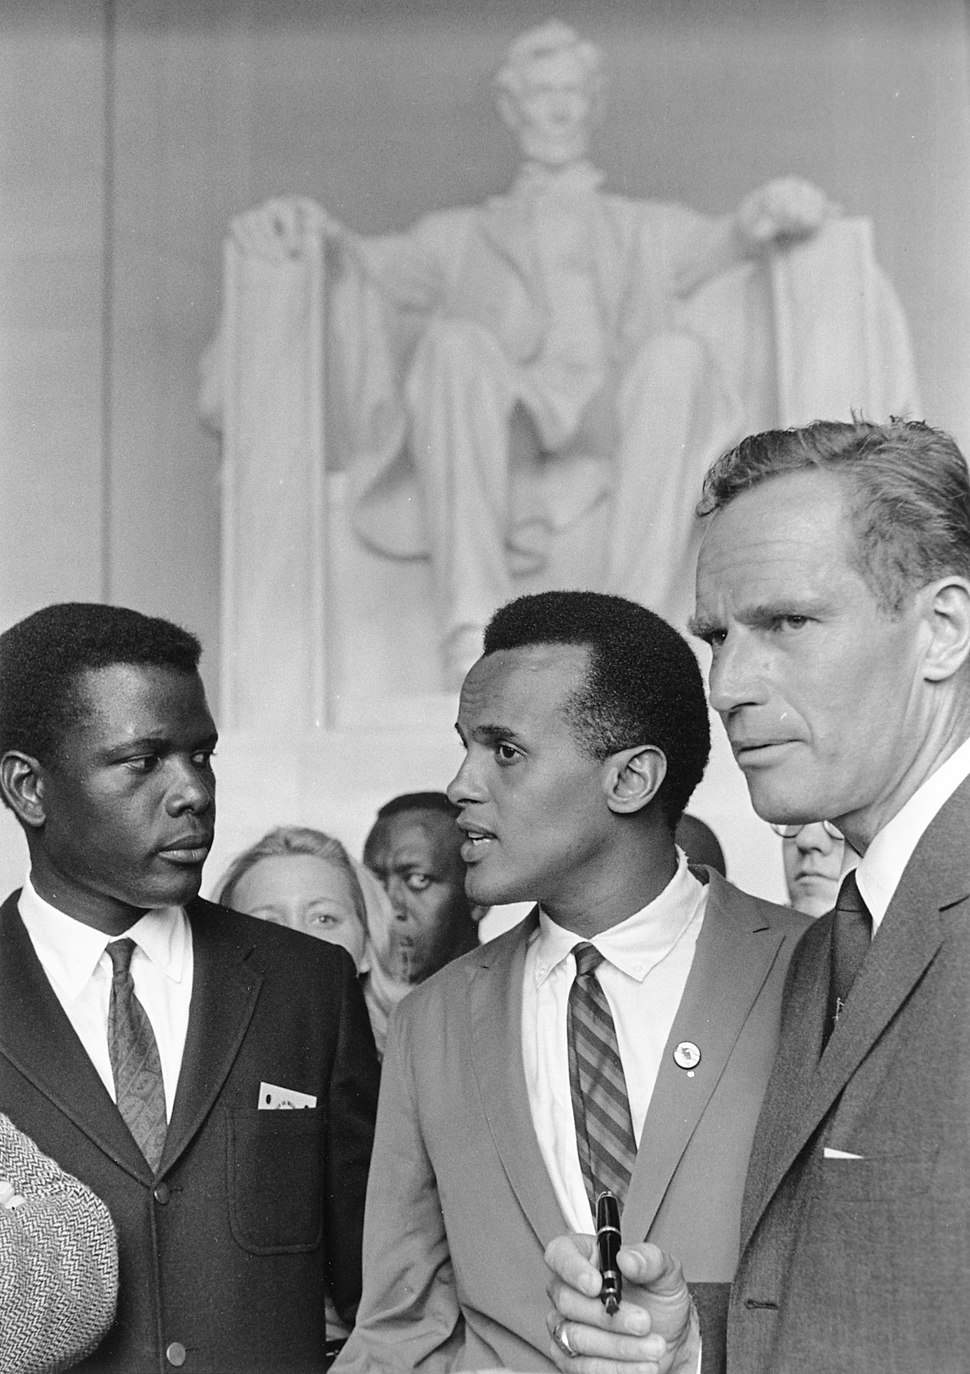 Poitier Belafonte Heston Civil Rights March 1963